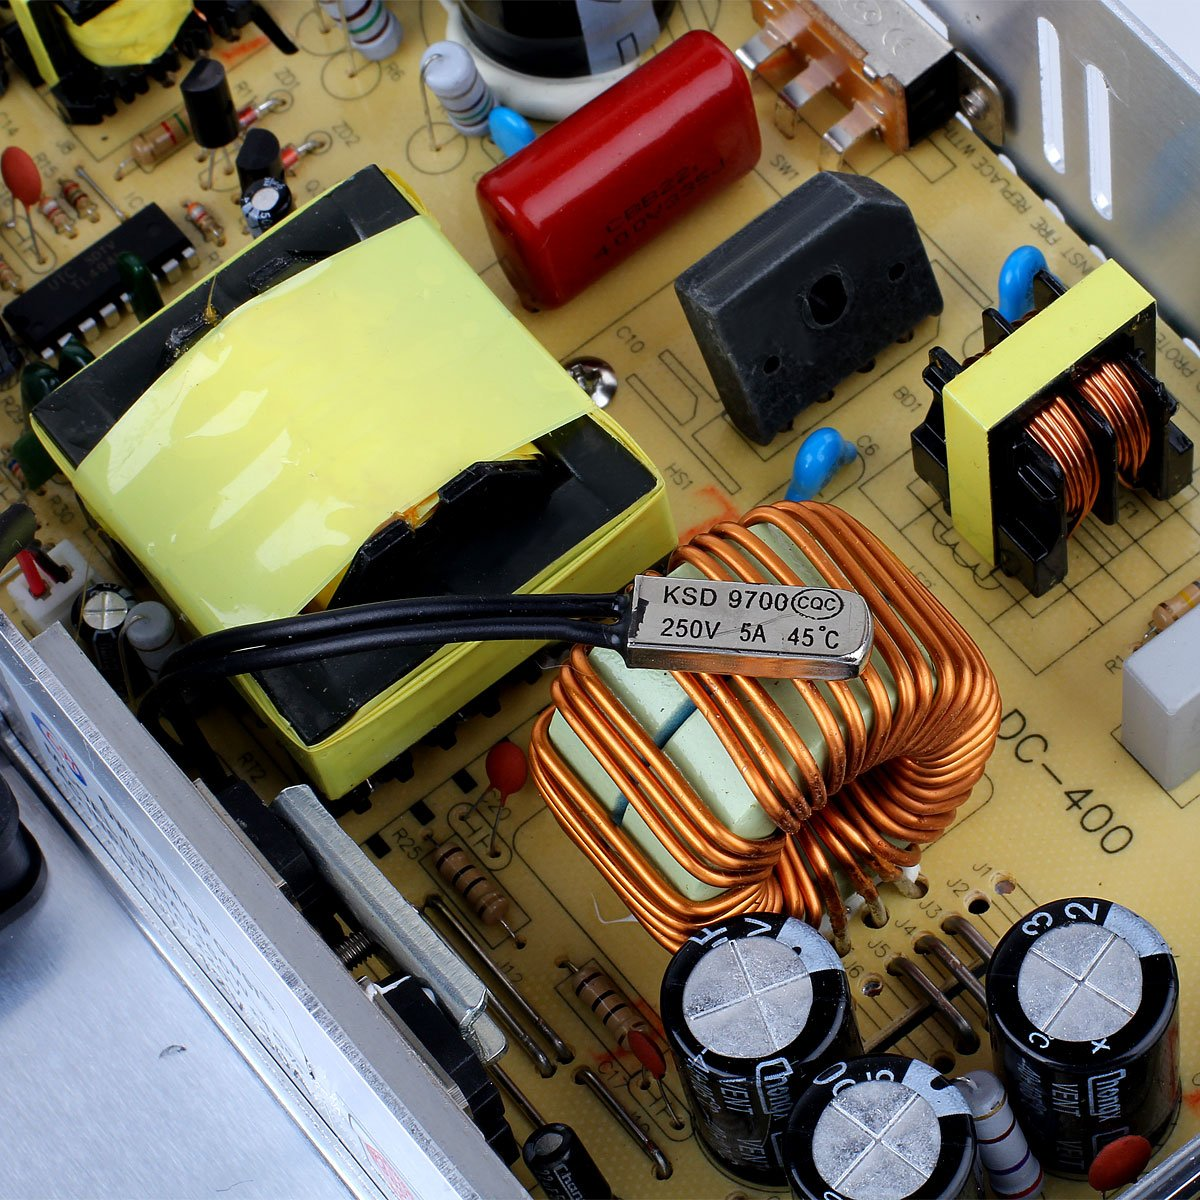 EPBOWPT 12V 30A Universal Regulated Switching Power Supply Driver for LED Strip Light CCTV Radio Computer Project by EPBOWPT (Image #6)